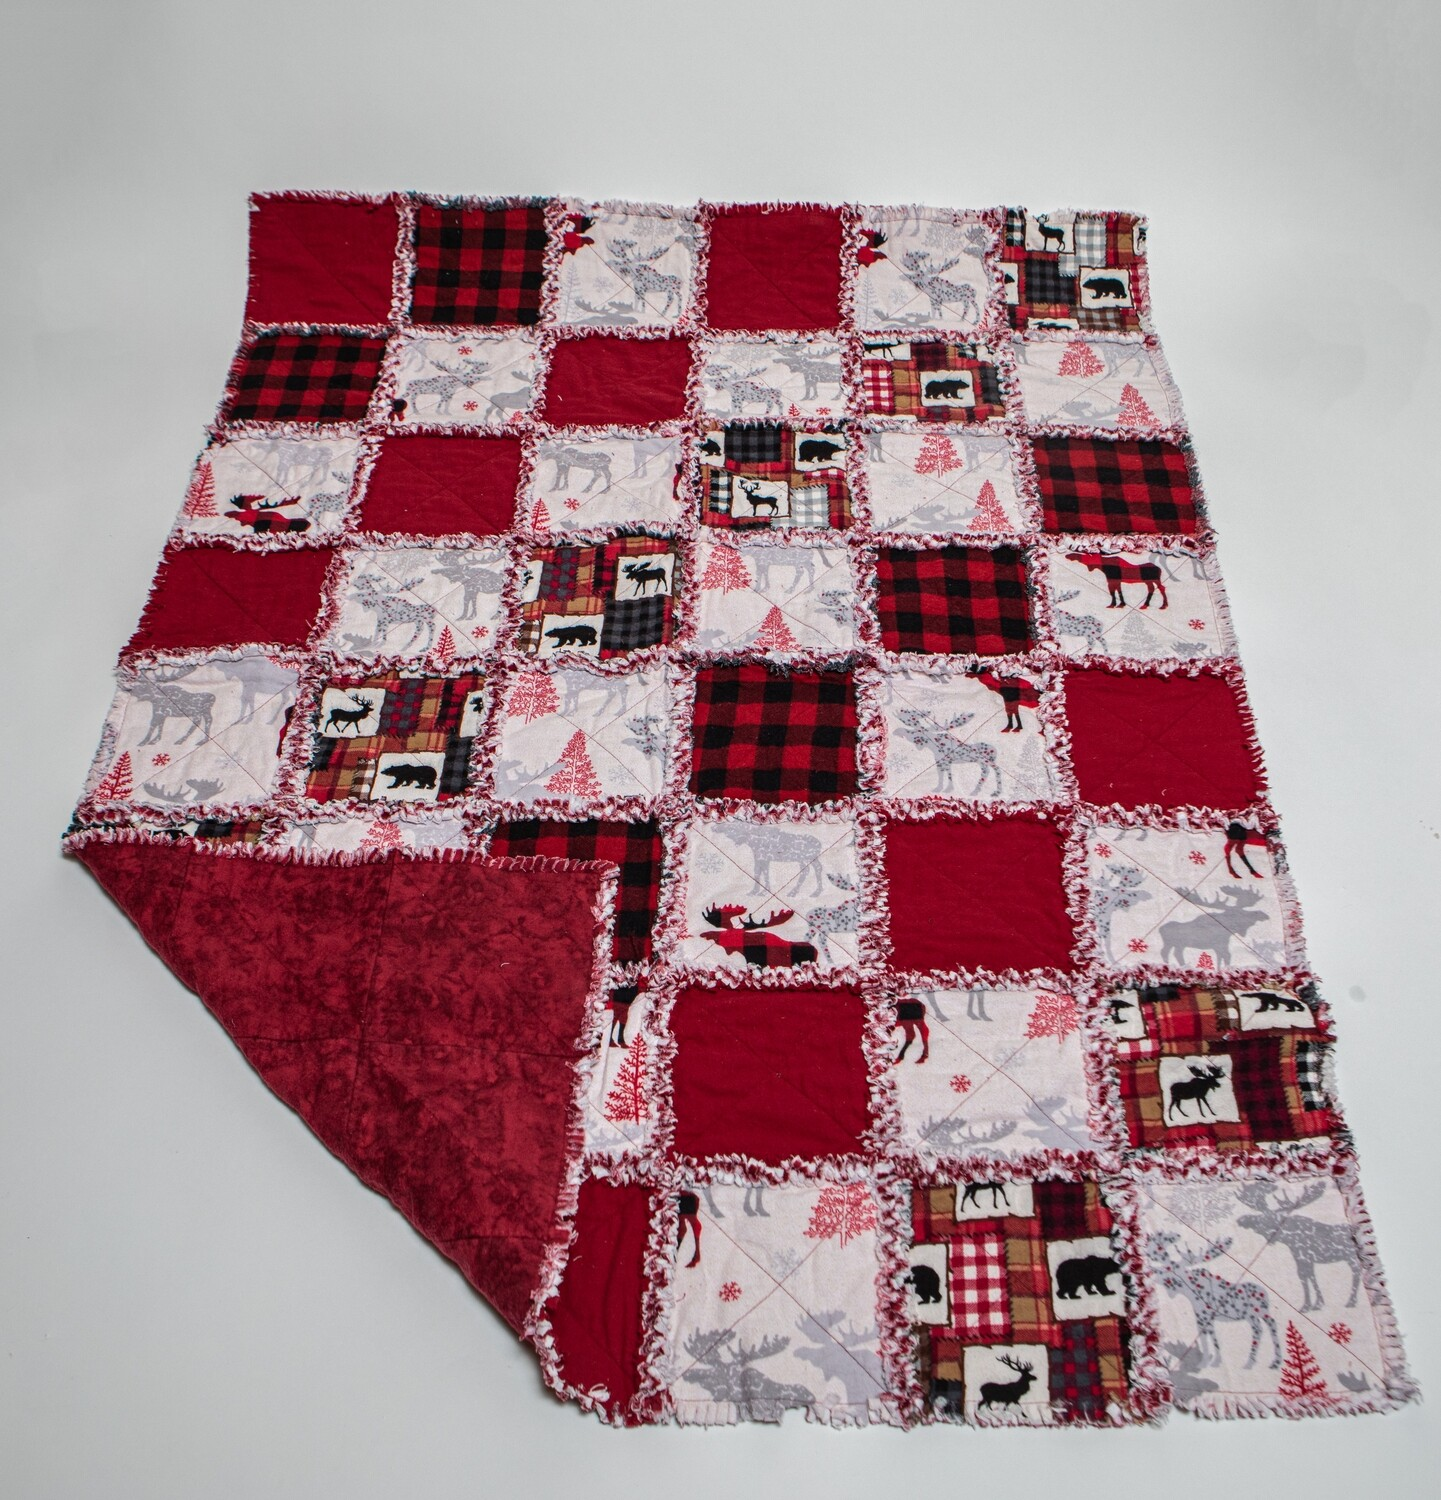 Crib Quilt Red,Black, and White Moose